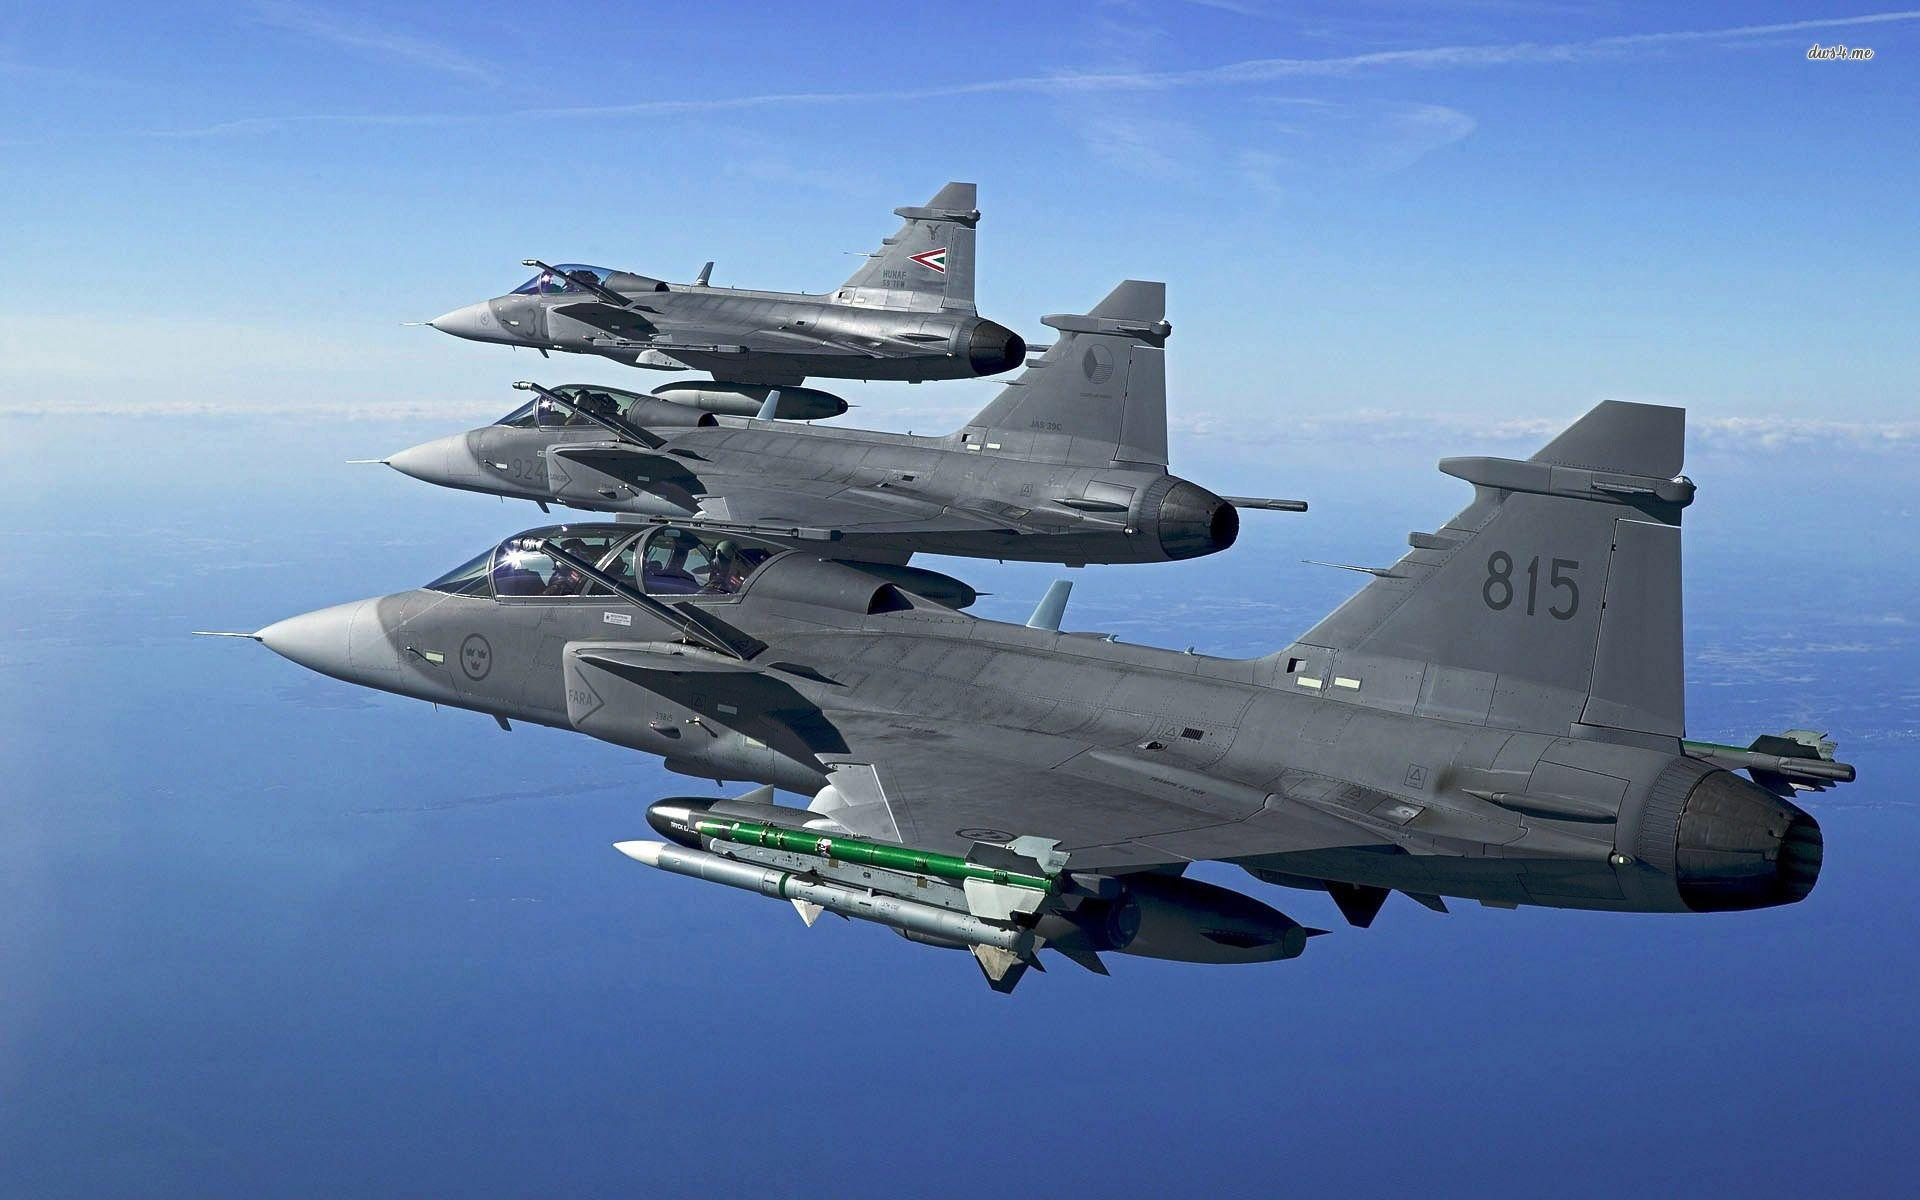 Free Aircraft Fighter Jets Helicopters Wallpapers | HD Wallpapers ...